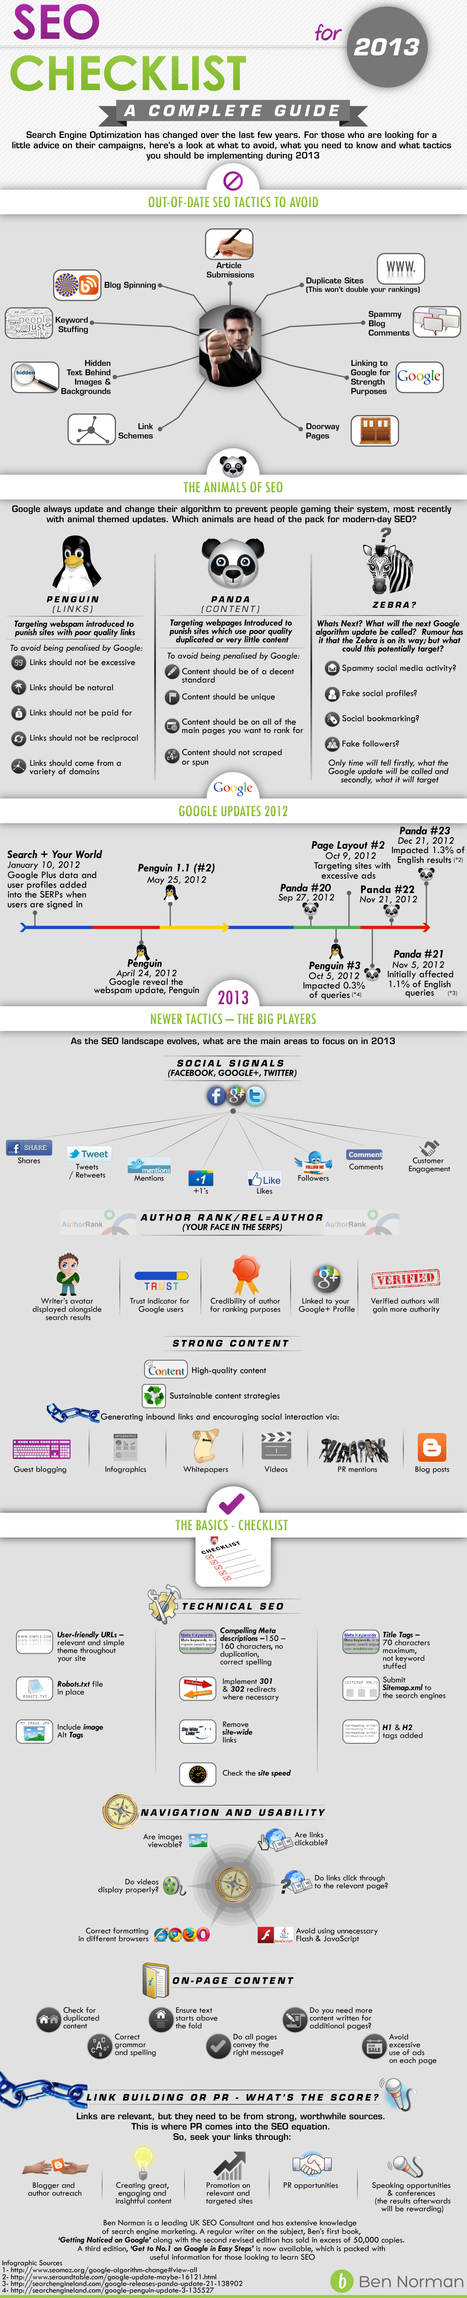 [Infographic] SEO Checklist for 2013   Digital & Mobile Marketing Toolkit   Scoop.it